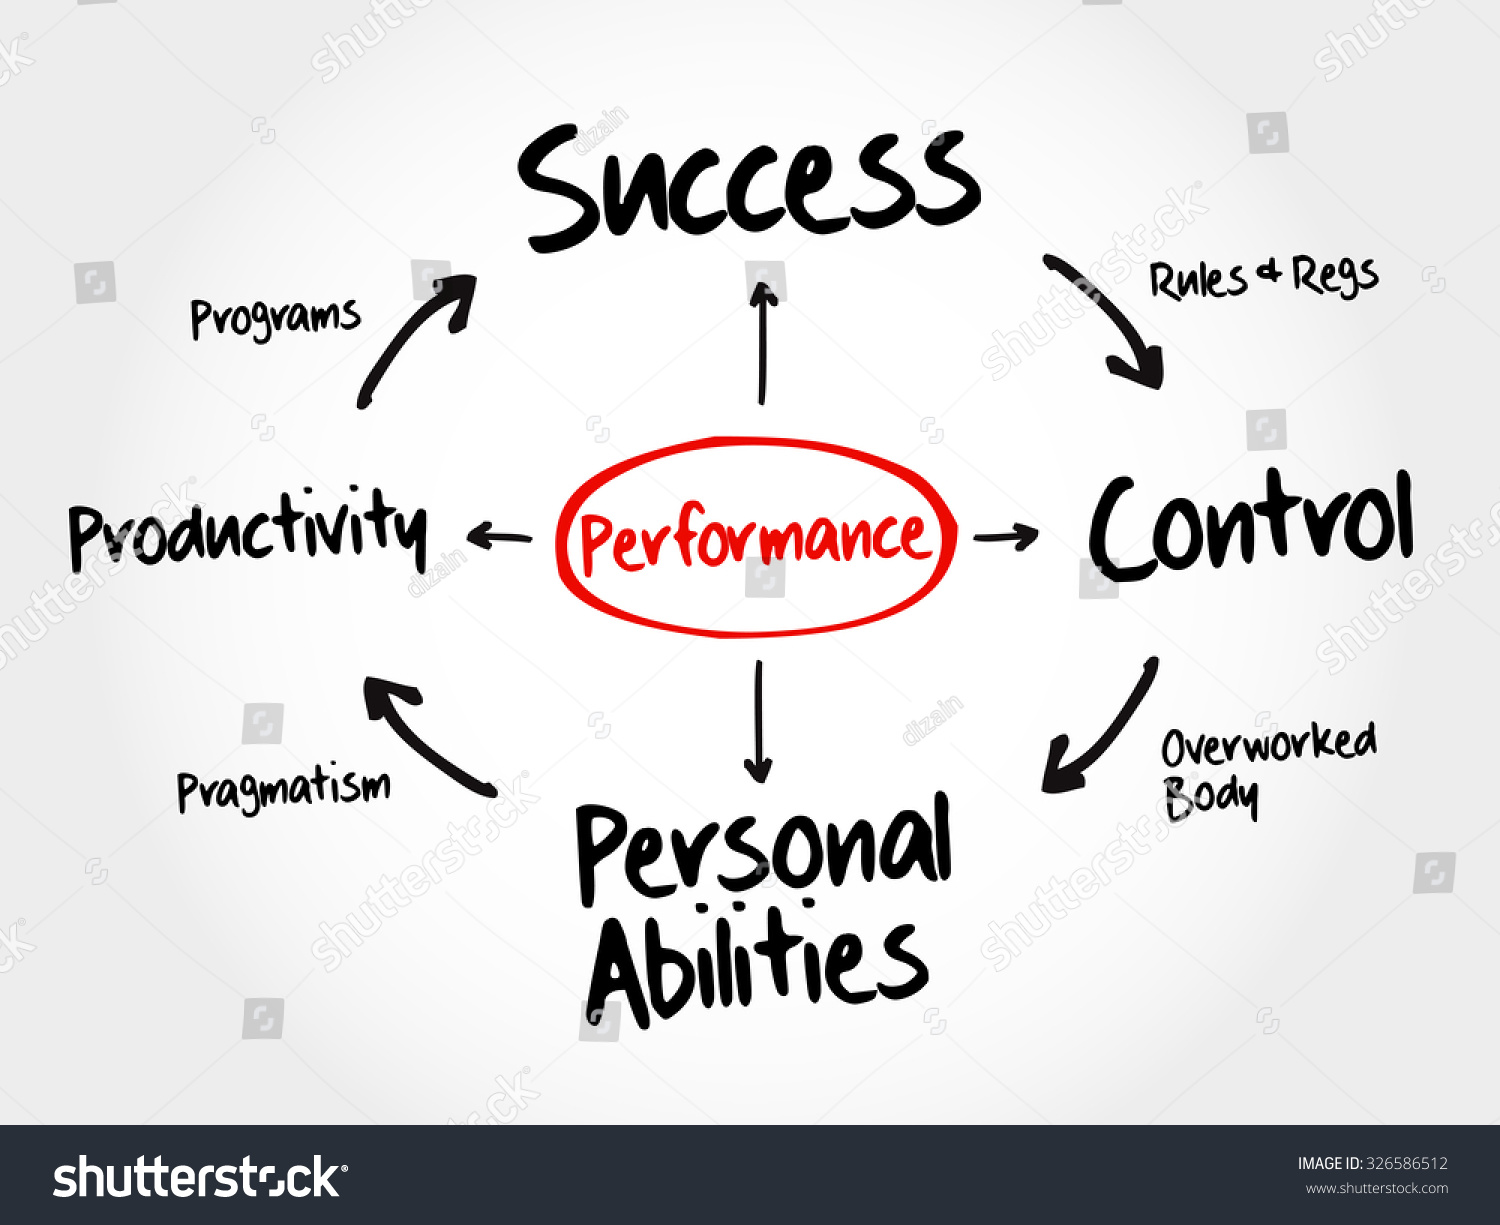 performance mind map flowchart business concept stock vector performance mind map flowchart business concept for presentations and reports